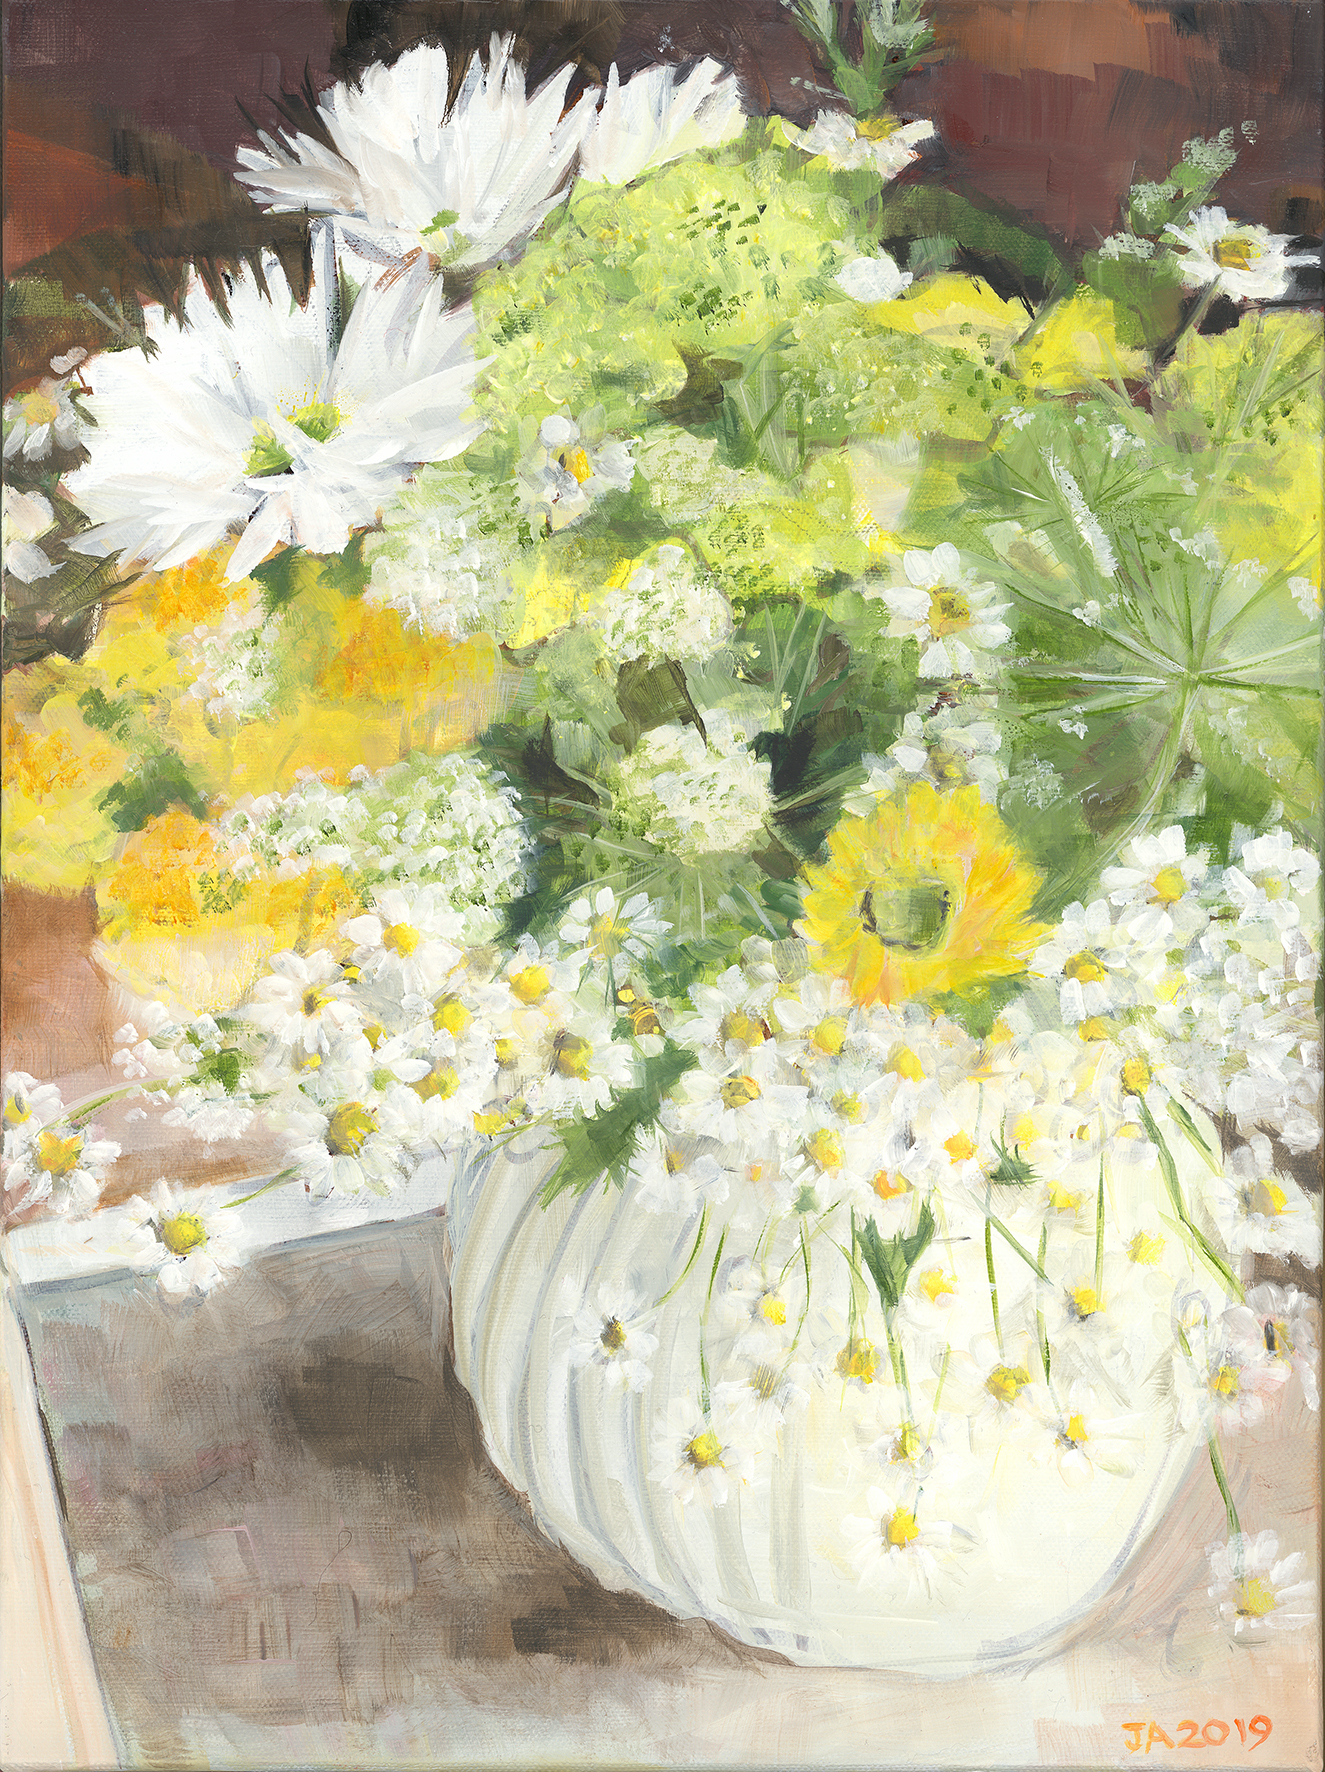 Yellow and White Daisy Flowers as an A3 Giclee print